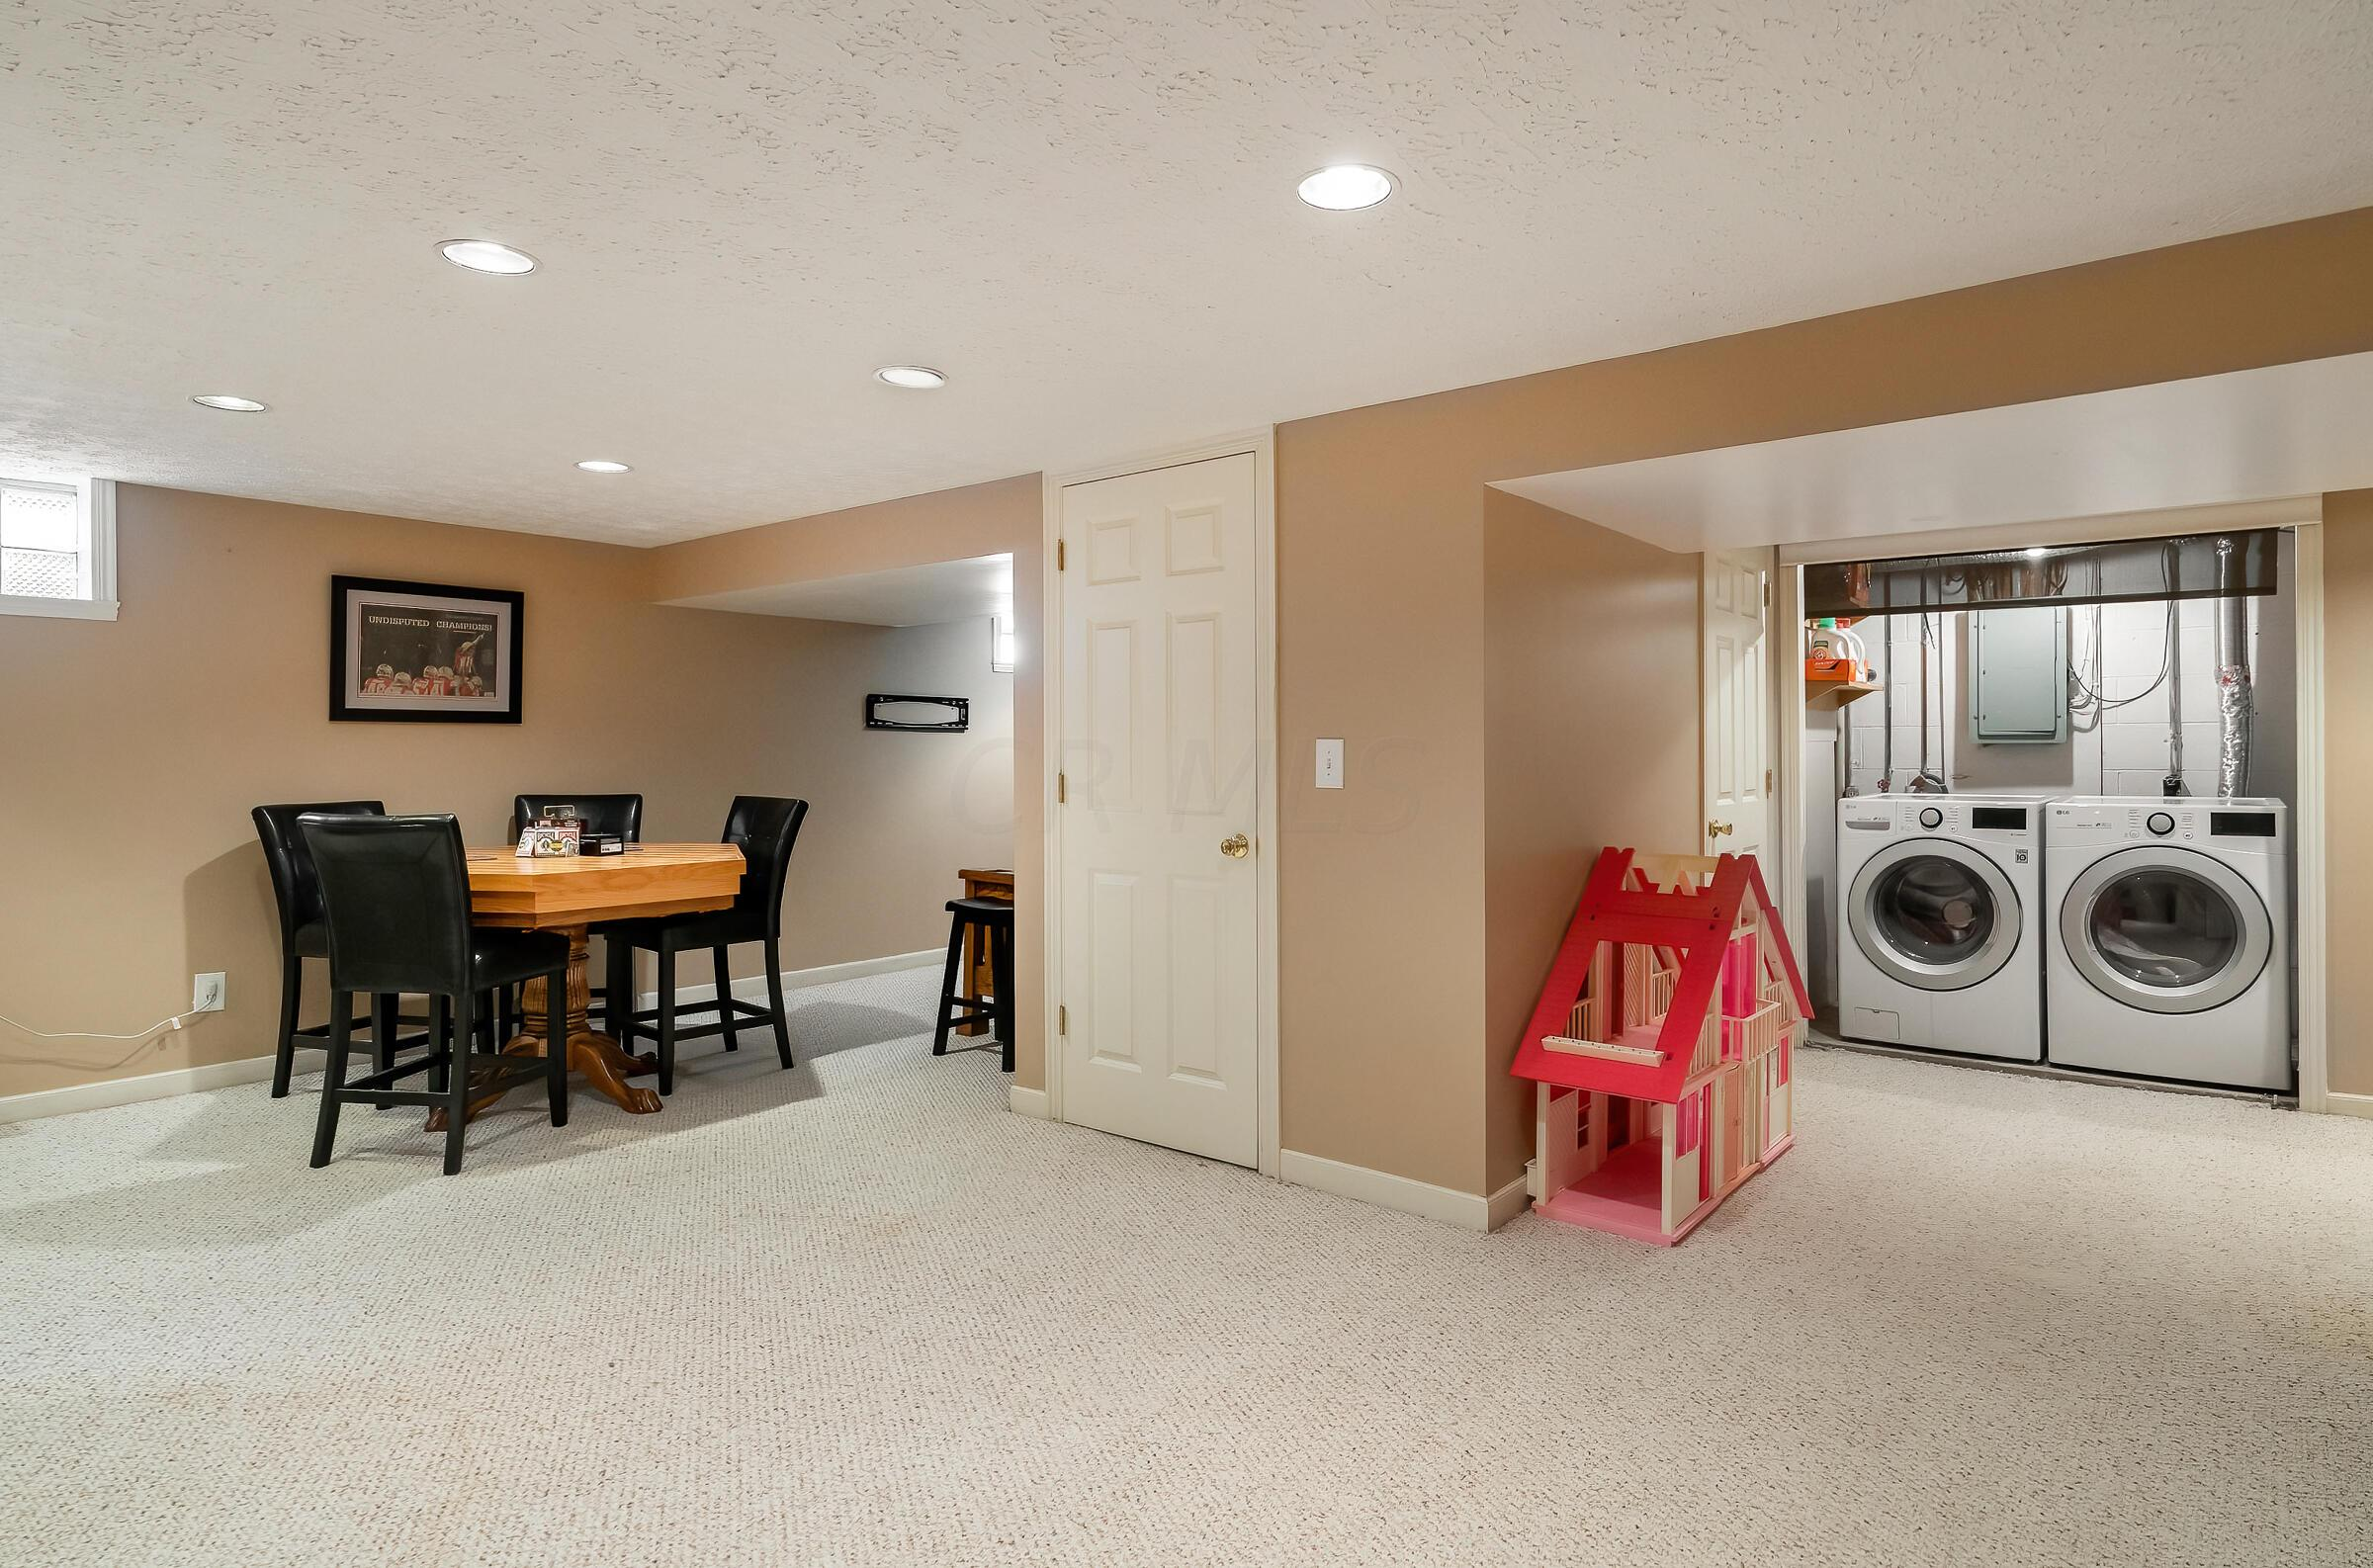 Open spaces for play and TV watching